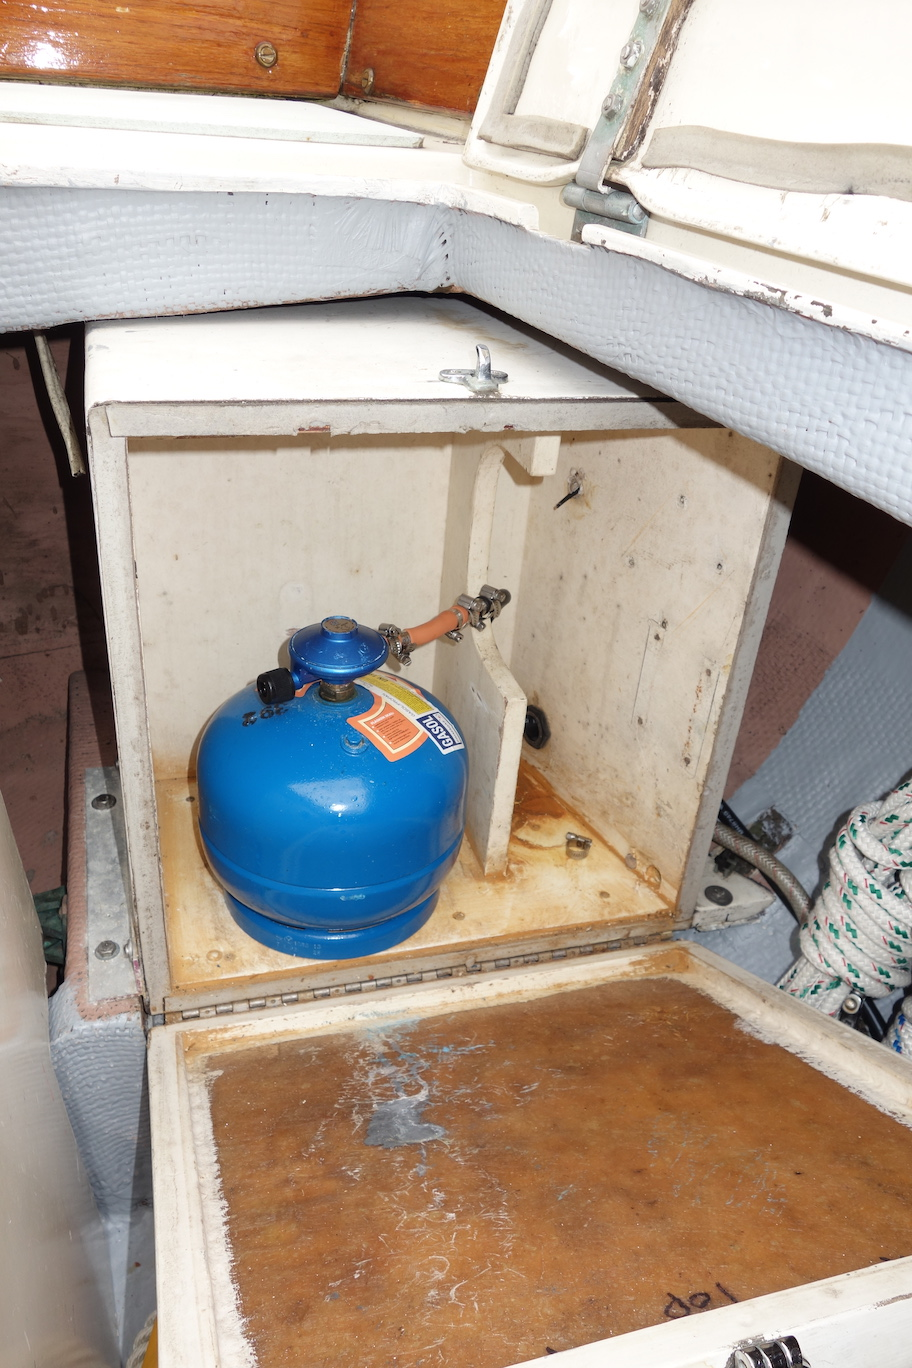 Propane locker in port cockpit locker.